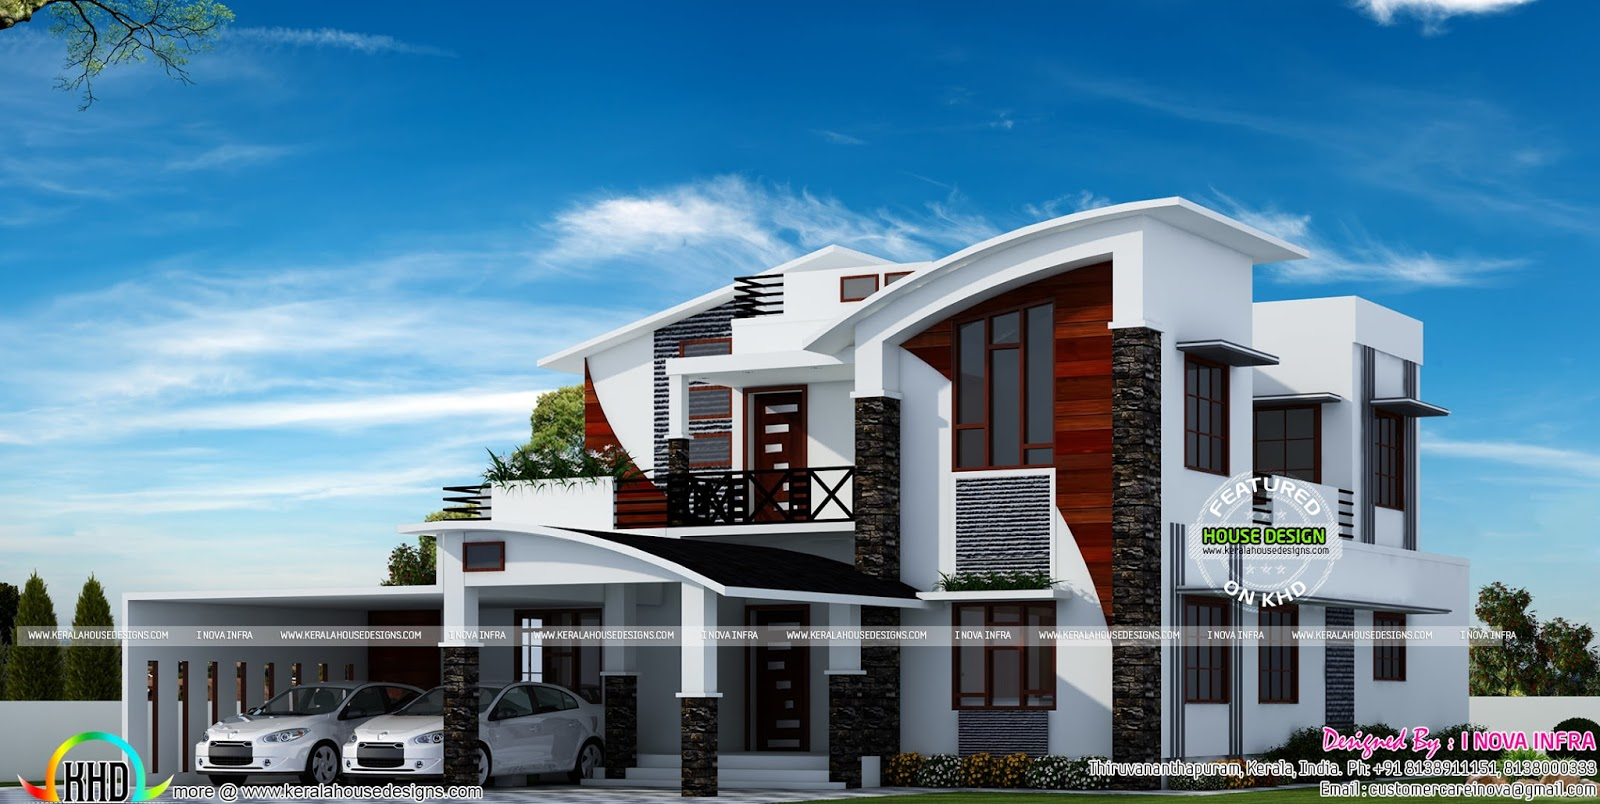 Contemporary model curved roof house kerala home design for Model house design 2016